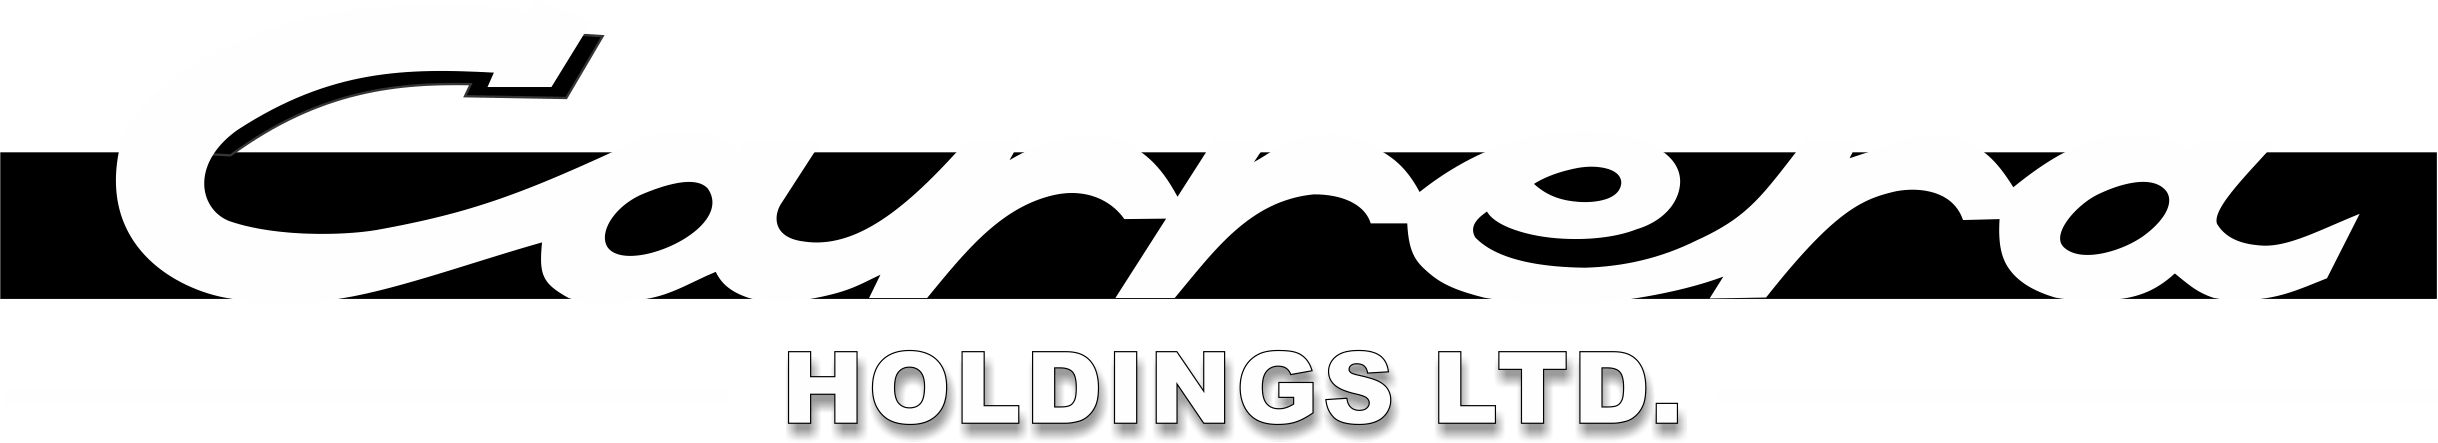 Carrera Holdings Ltd.